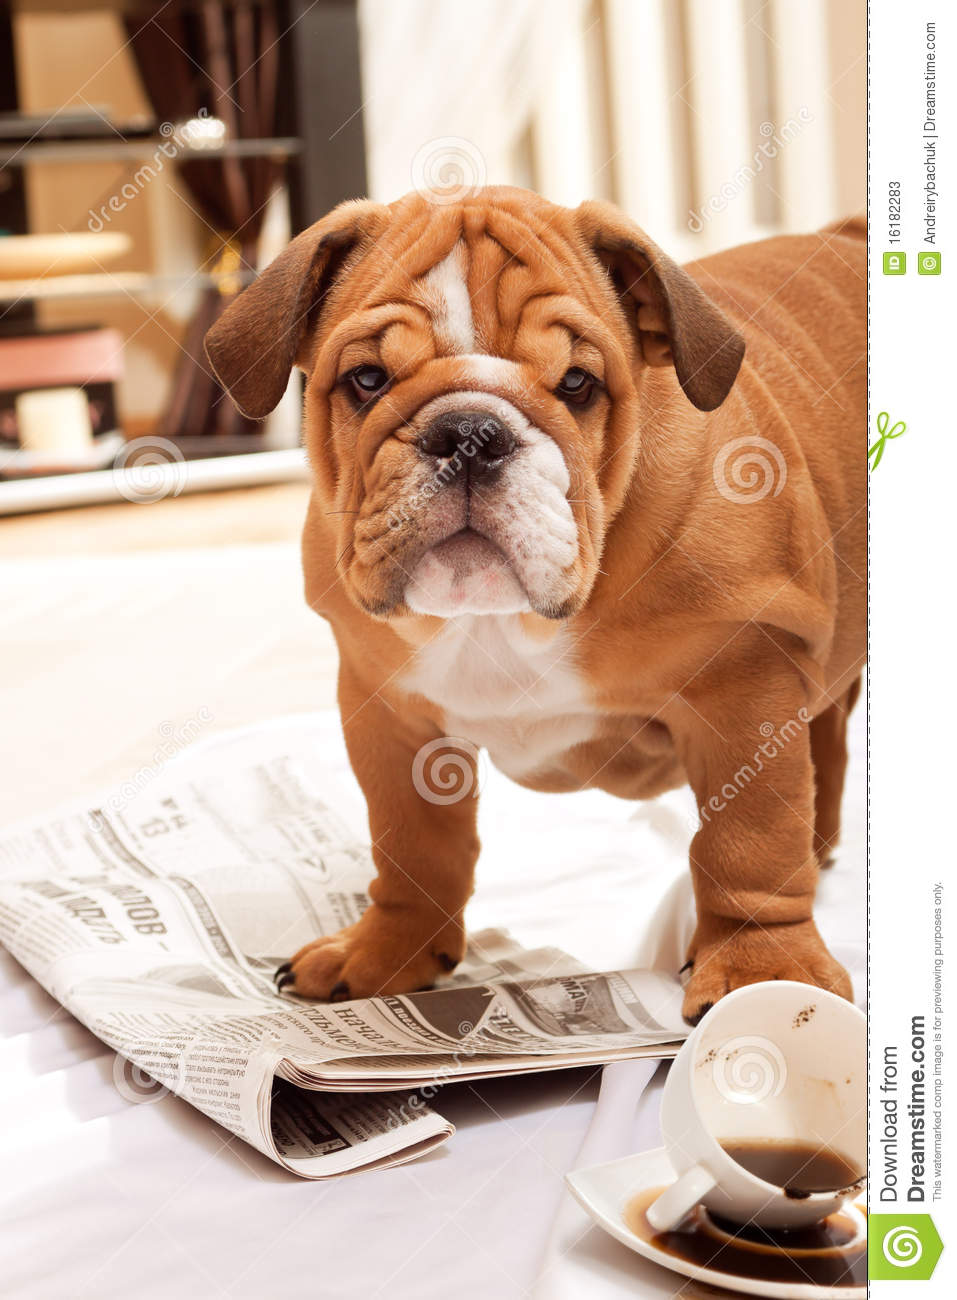 Download Dog, A Newspaper And Spill Coffee. Stock Image - Image of newspaper, bulldog: 16182283